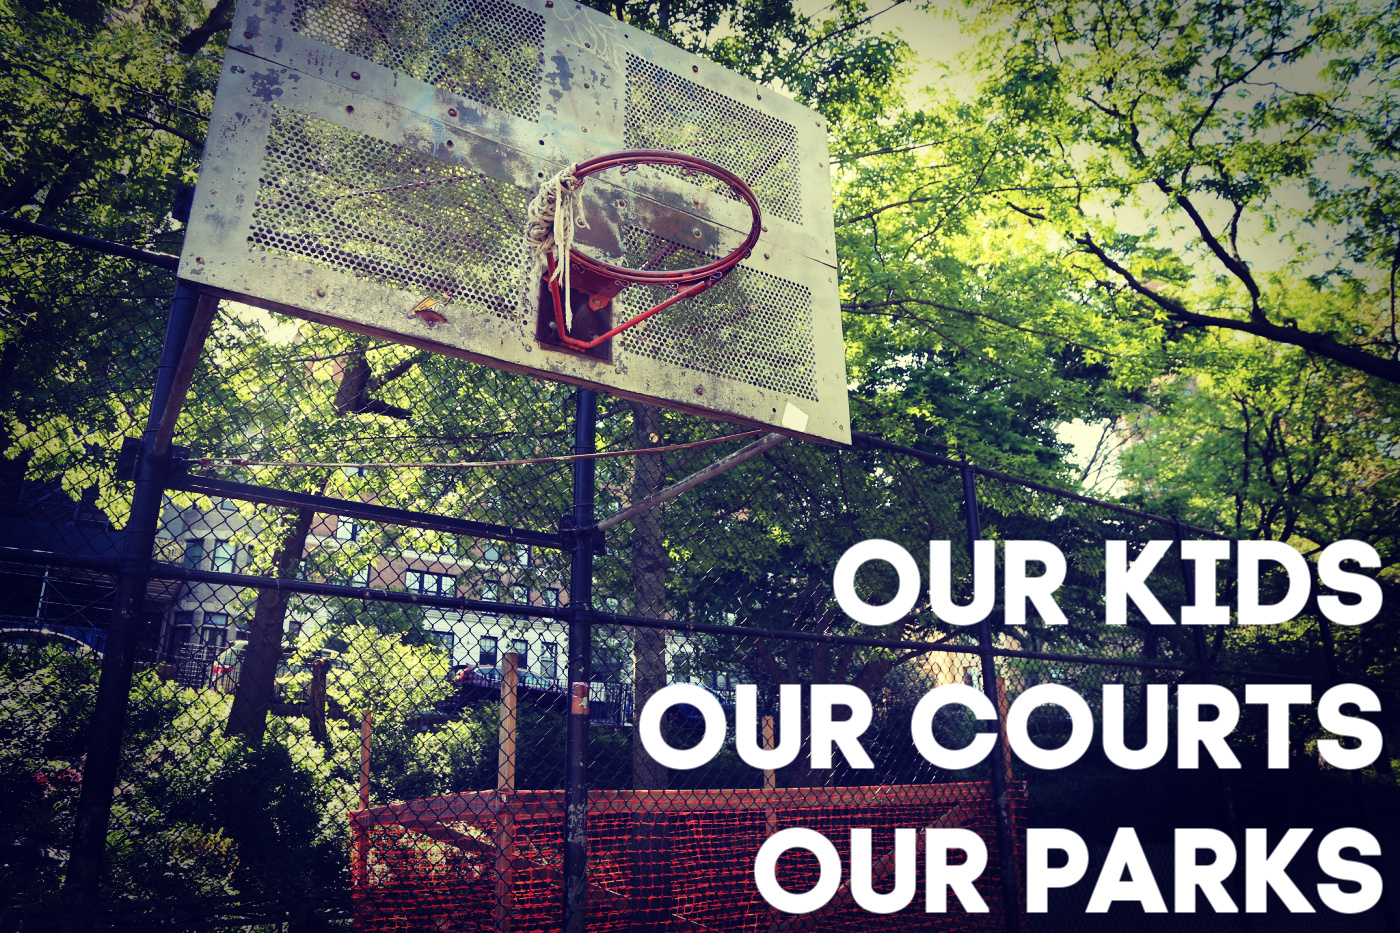 Our Parks Our Kids